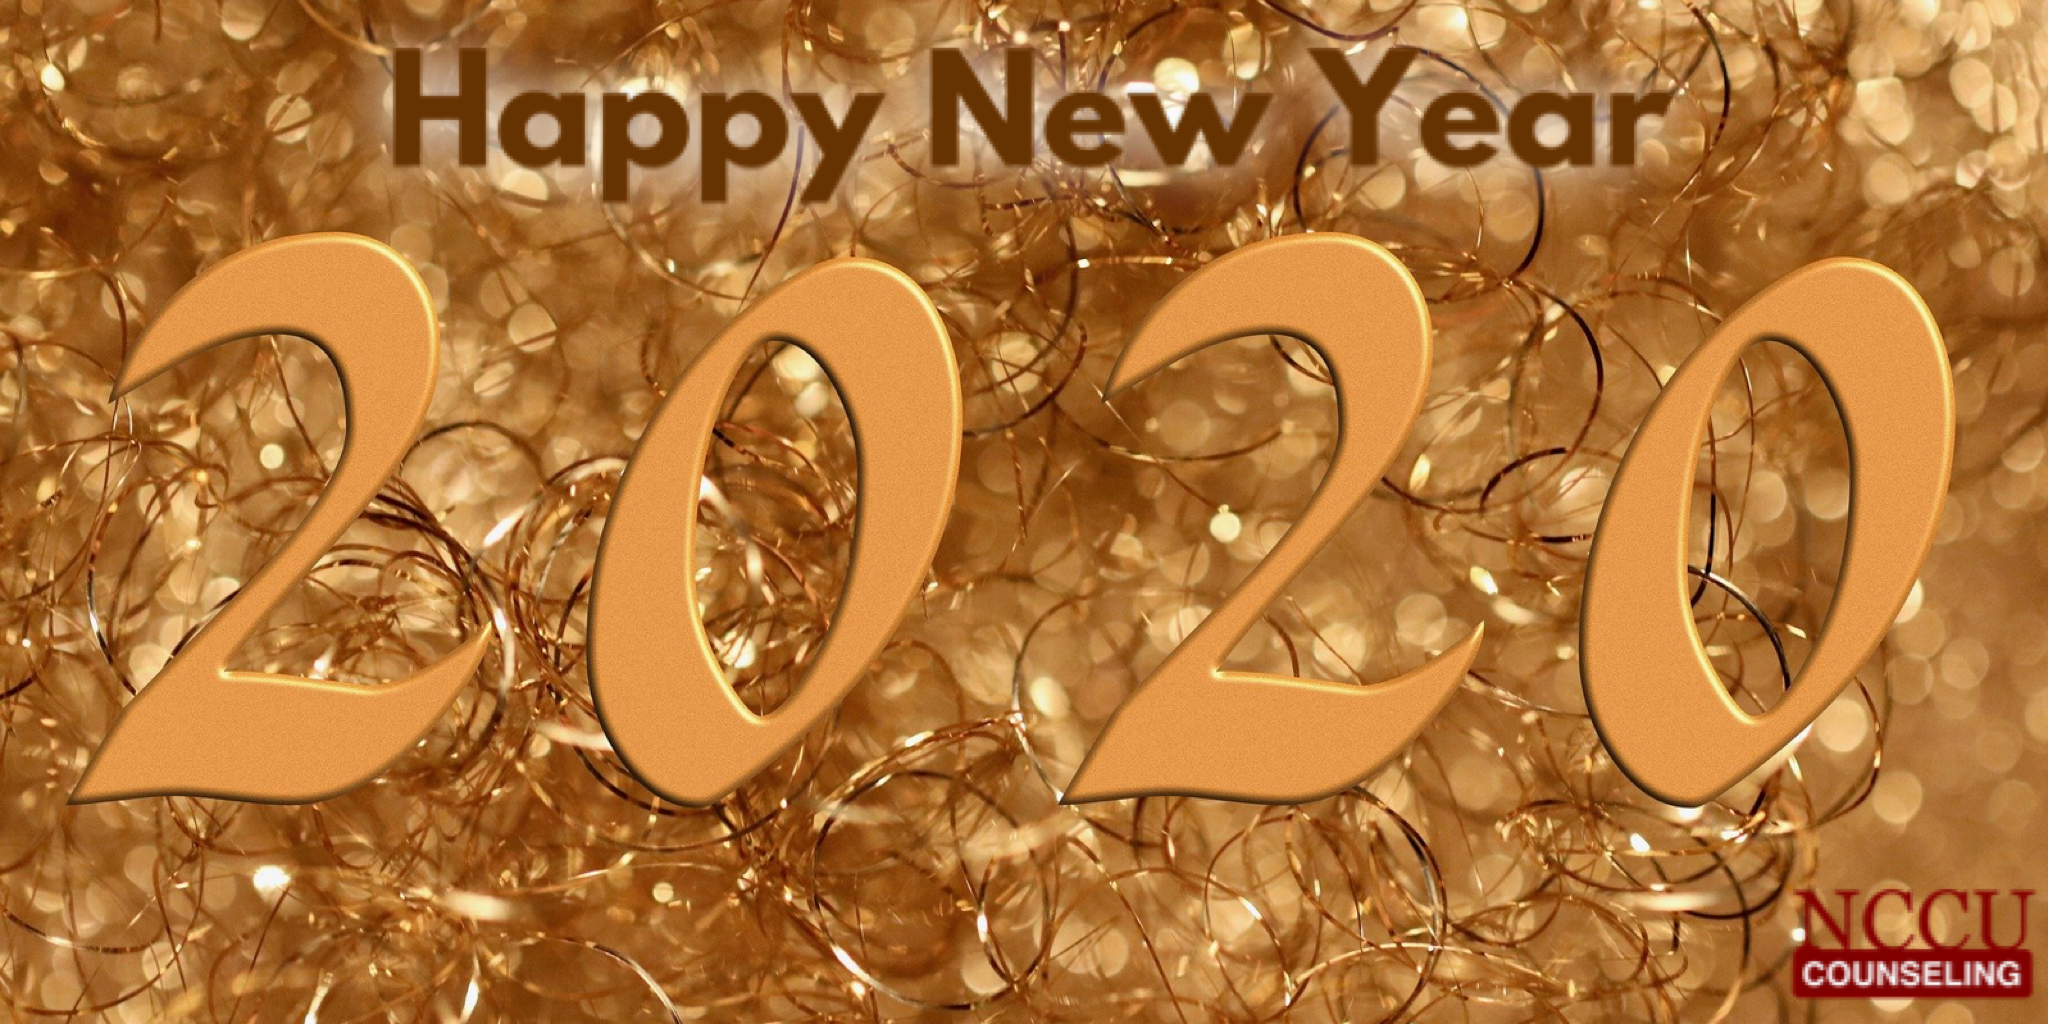 Happy New Year from nccuCounseling